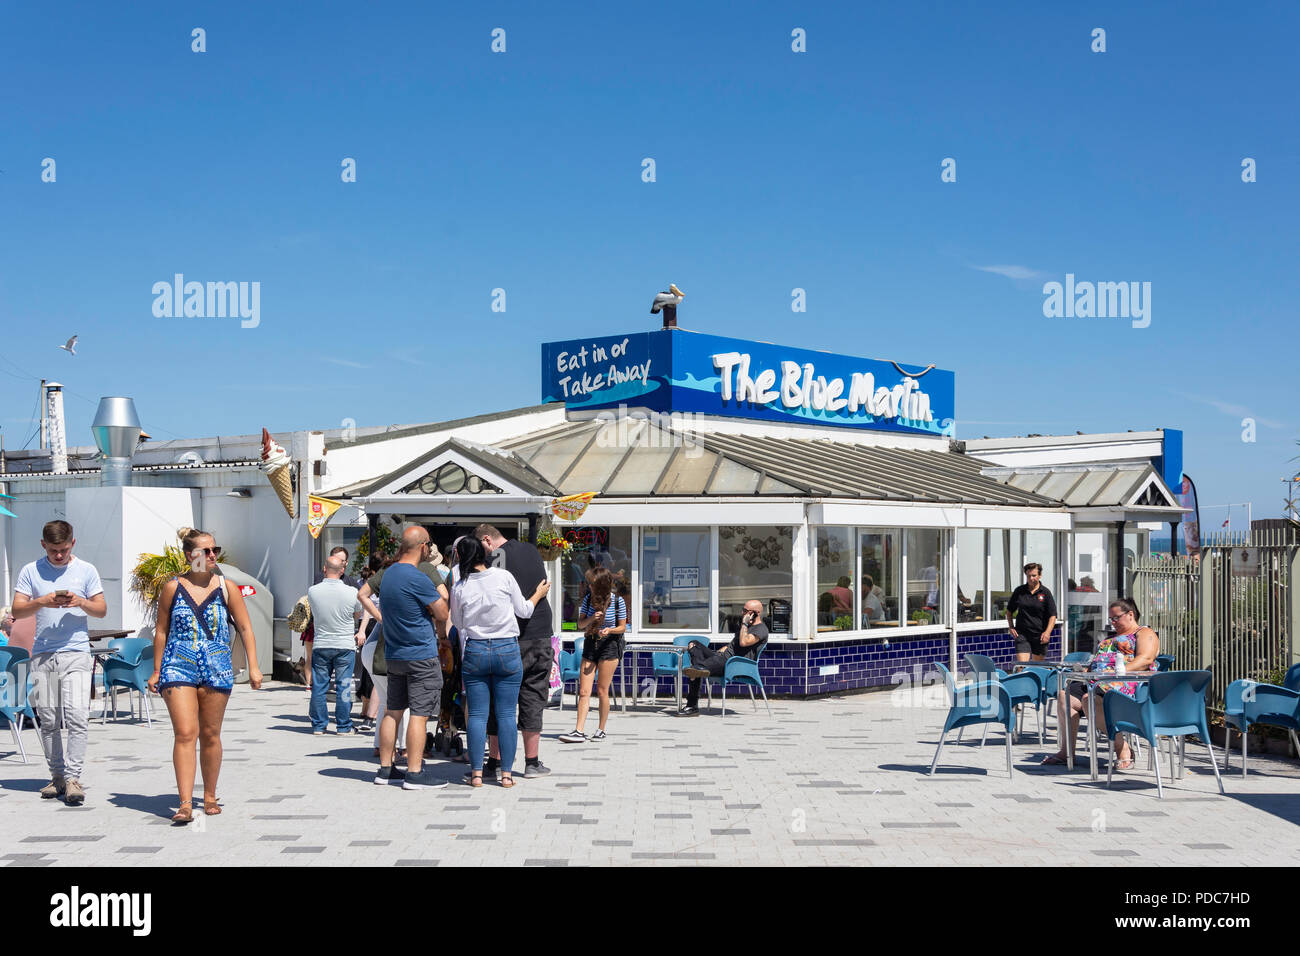 The Blue Marlin fish & chips restaurant, South Foreshore, South Shields, Tyne and Wear, England, United Kingdom - Stock Image